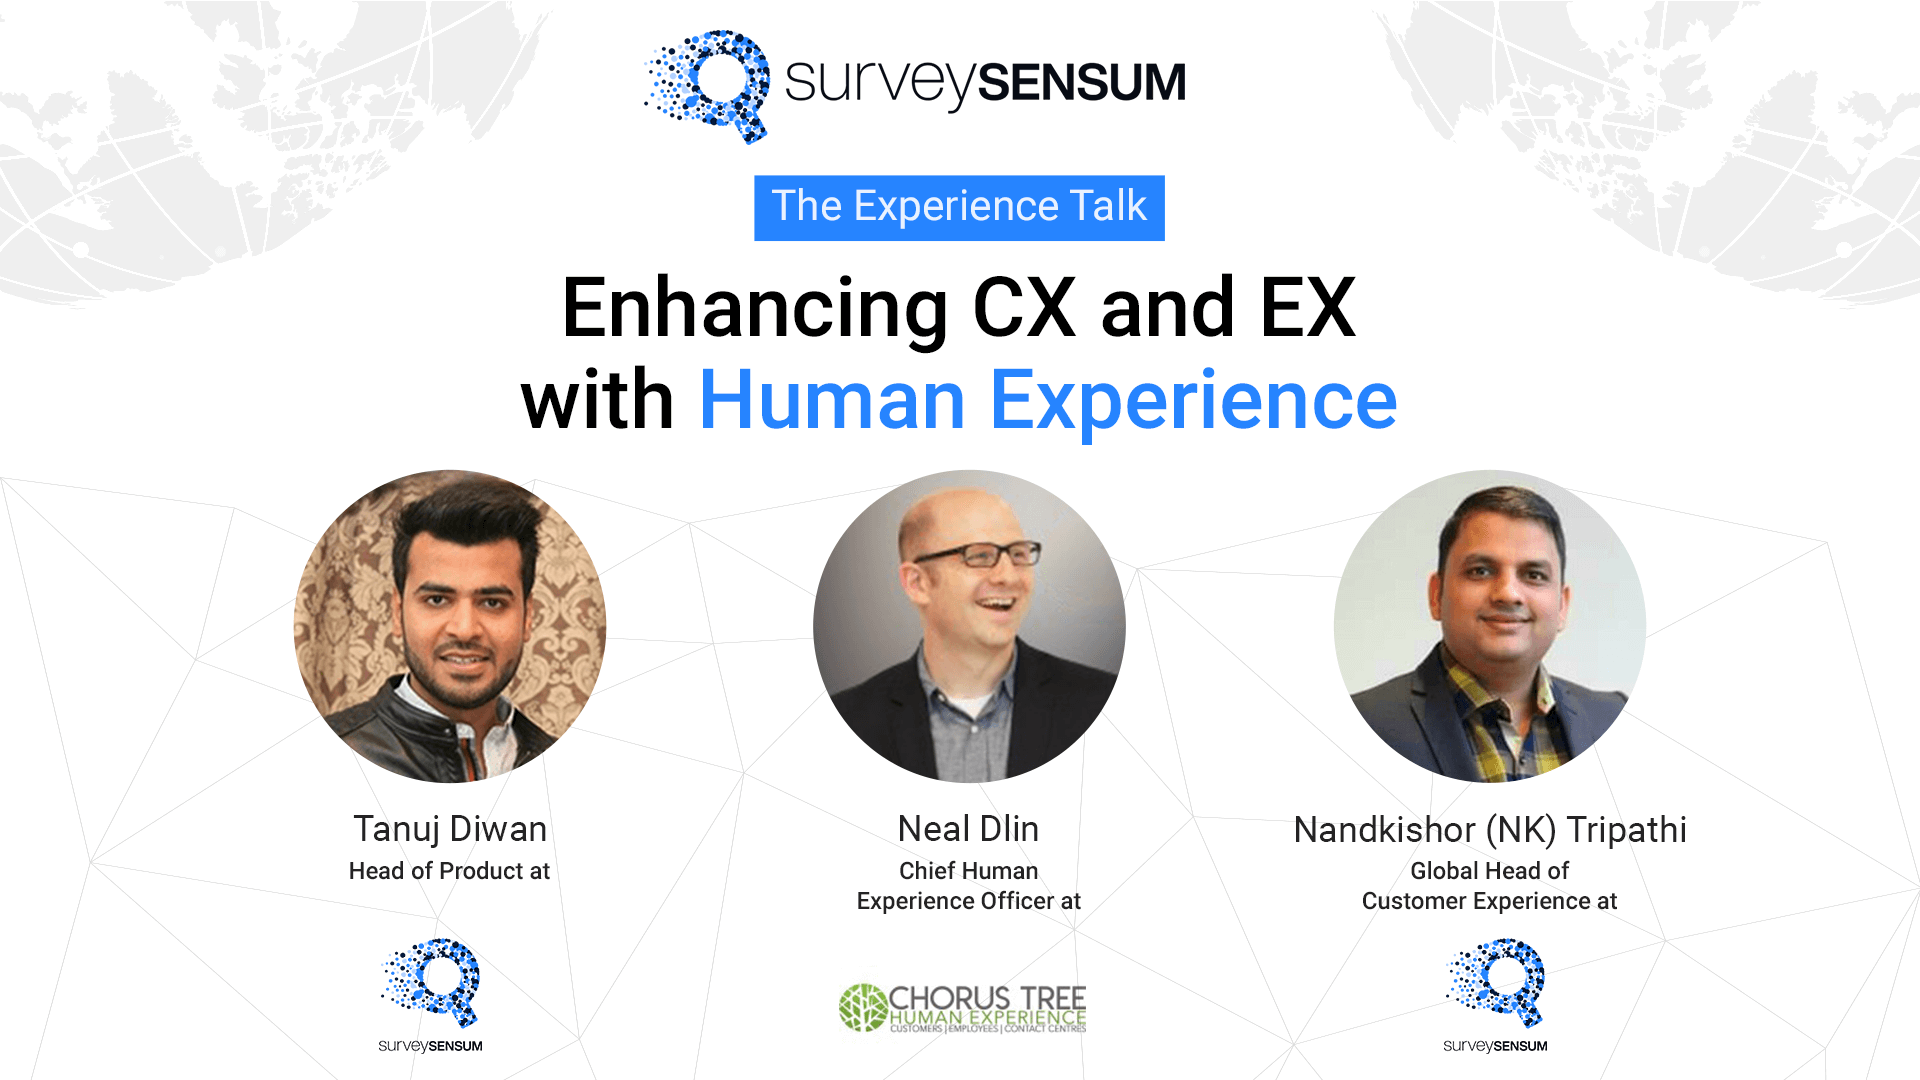 Enhancing CX and EX With Human Experience